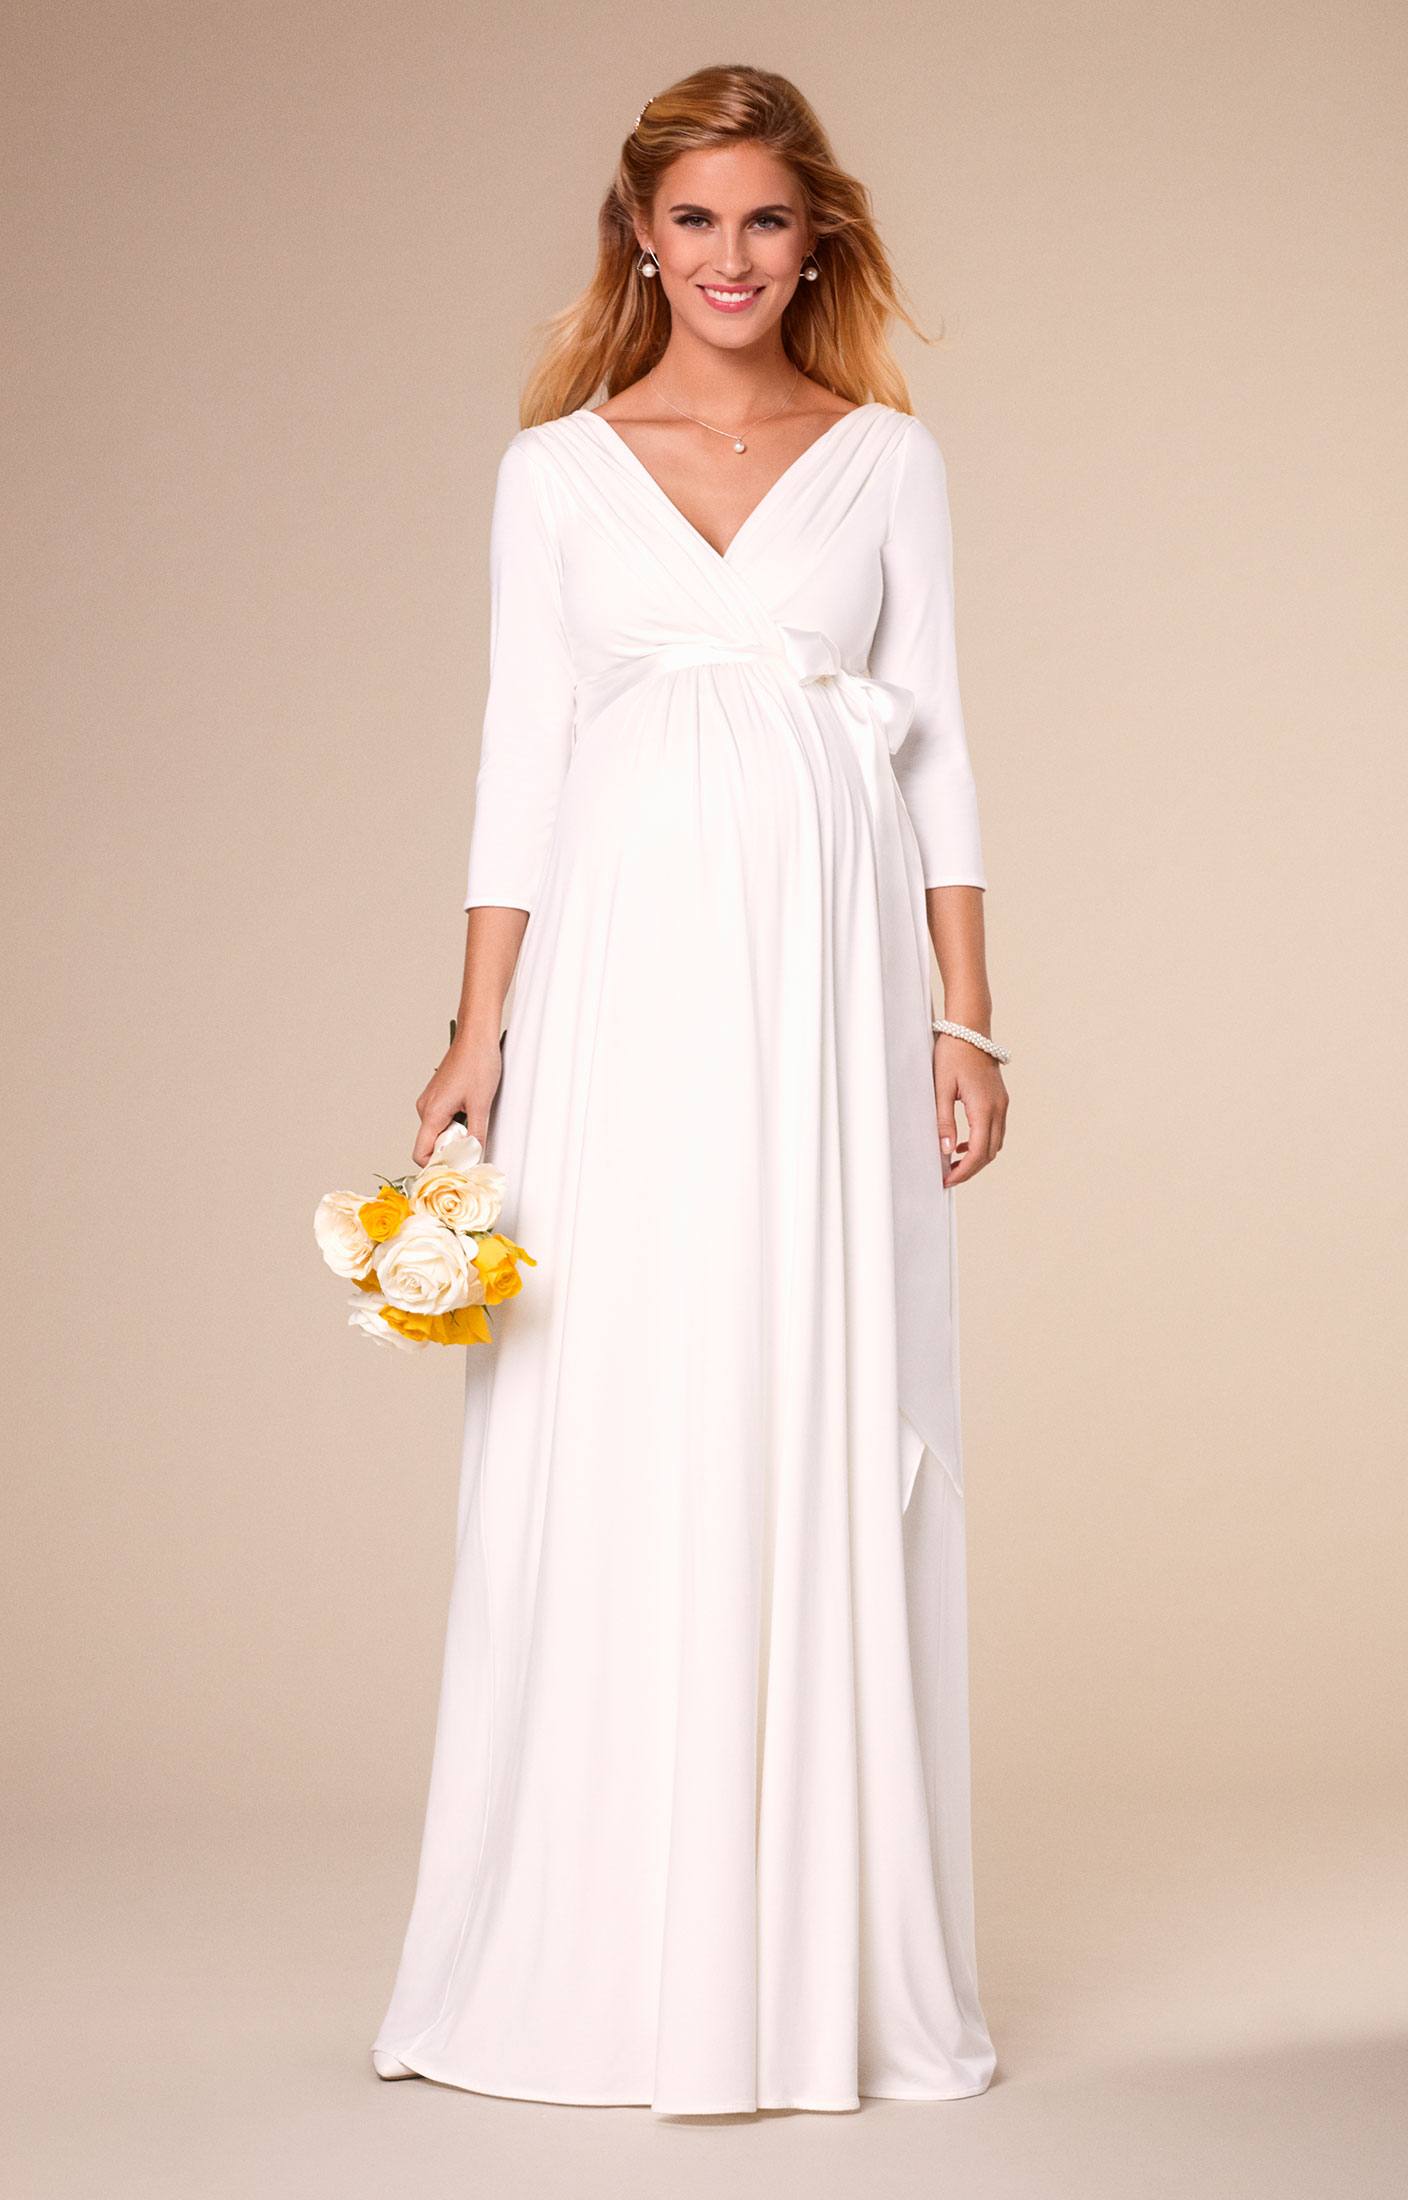 31bd6e4246bf Simple yet serene, our best-selling Willow maternity wedding gown has a  heavy drape for maximum glamour.